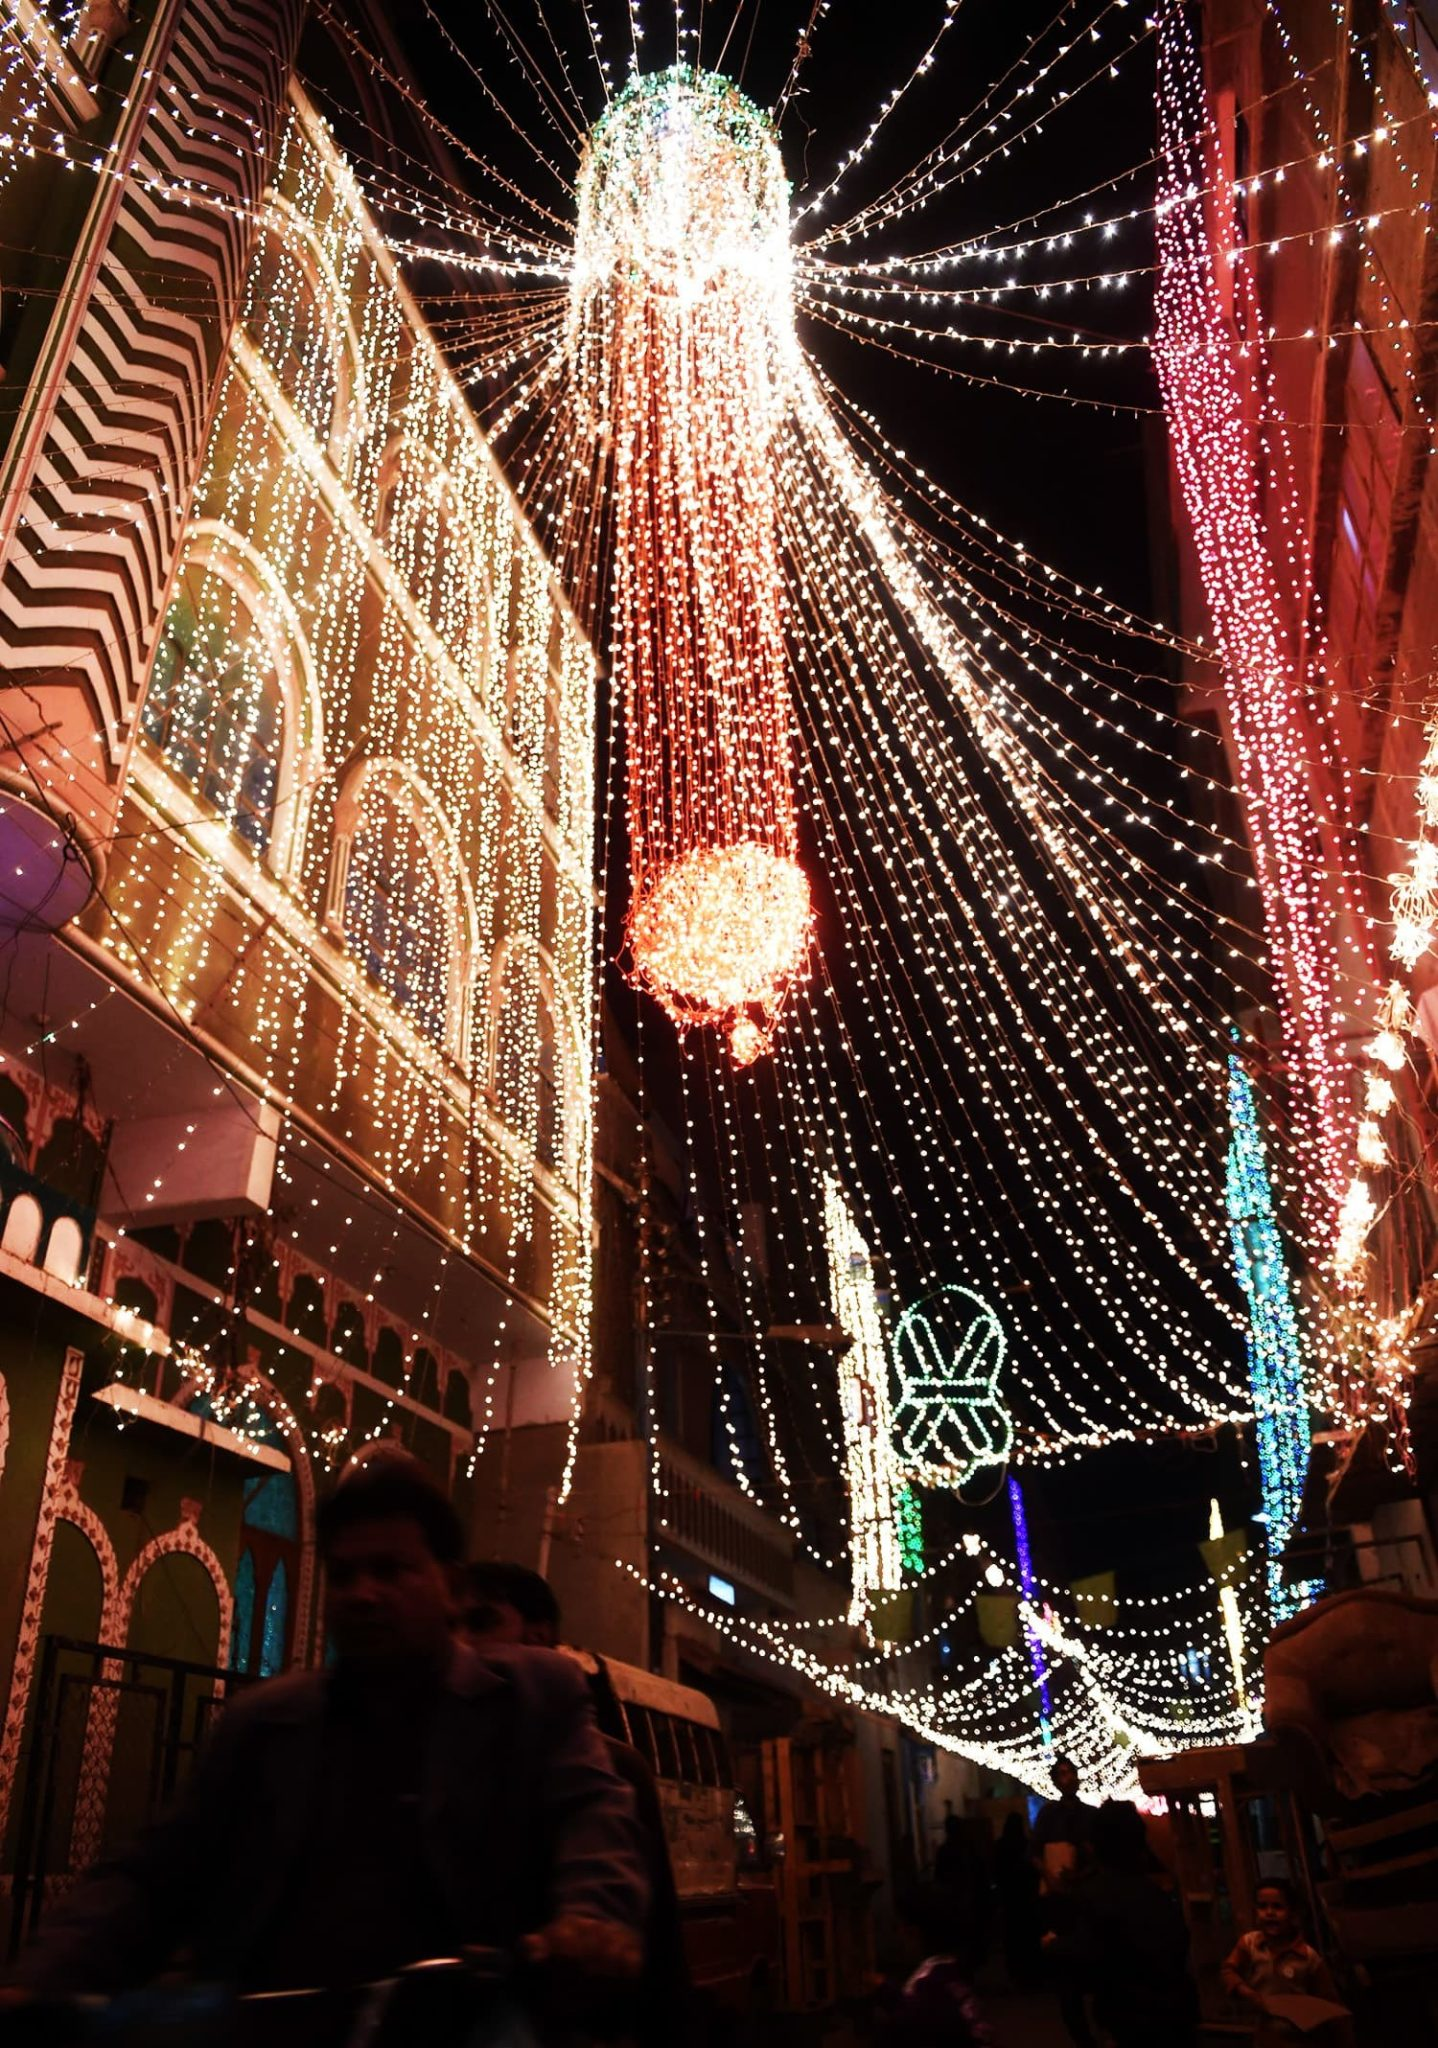 Pakistani men ride past a mosque decorated to celebrate the birthday of Prophet Mohammed in Karachi on December 23, 2015. The birthday of Prophet Mohammed, also known as 'Milad', is celebrated during the Islamic month of Rabi al-Awwal, which falls on December 24, 2015 in Pakistan. AFP PHOTO / Rizwan TABASSUM